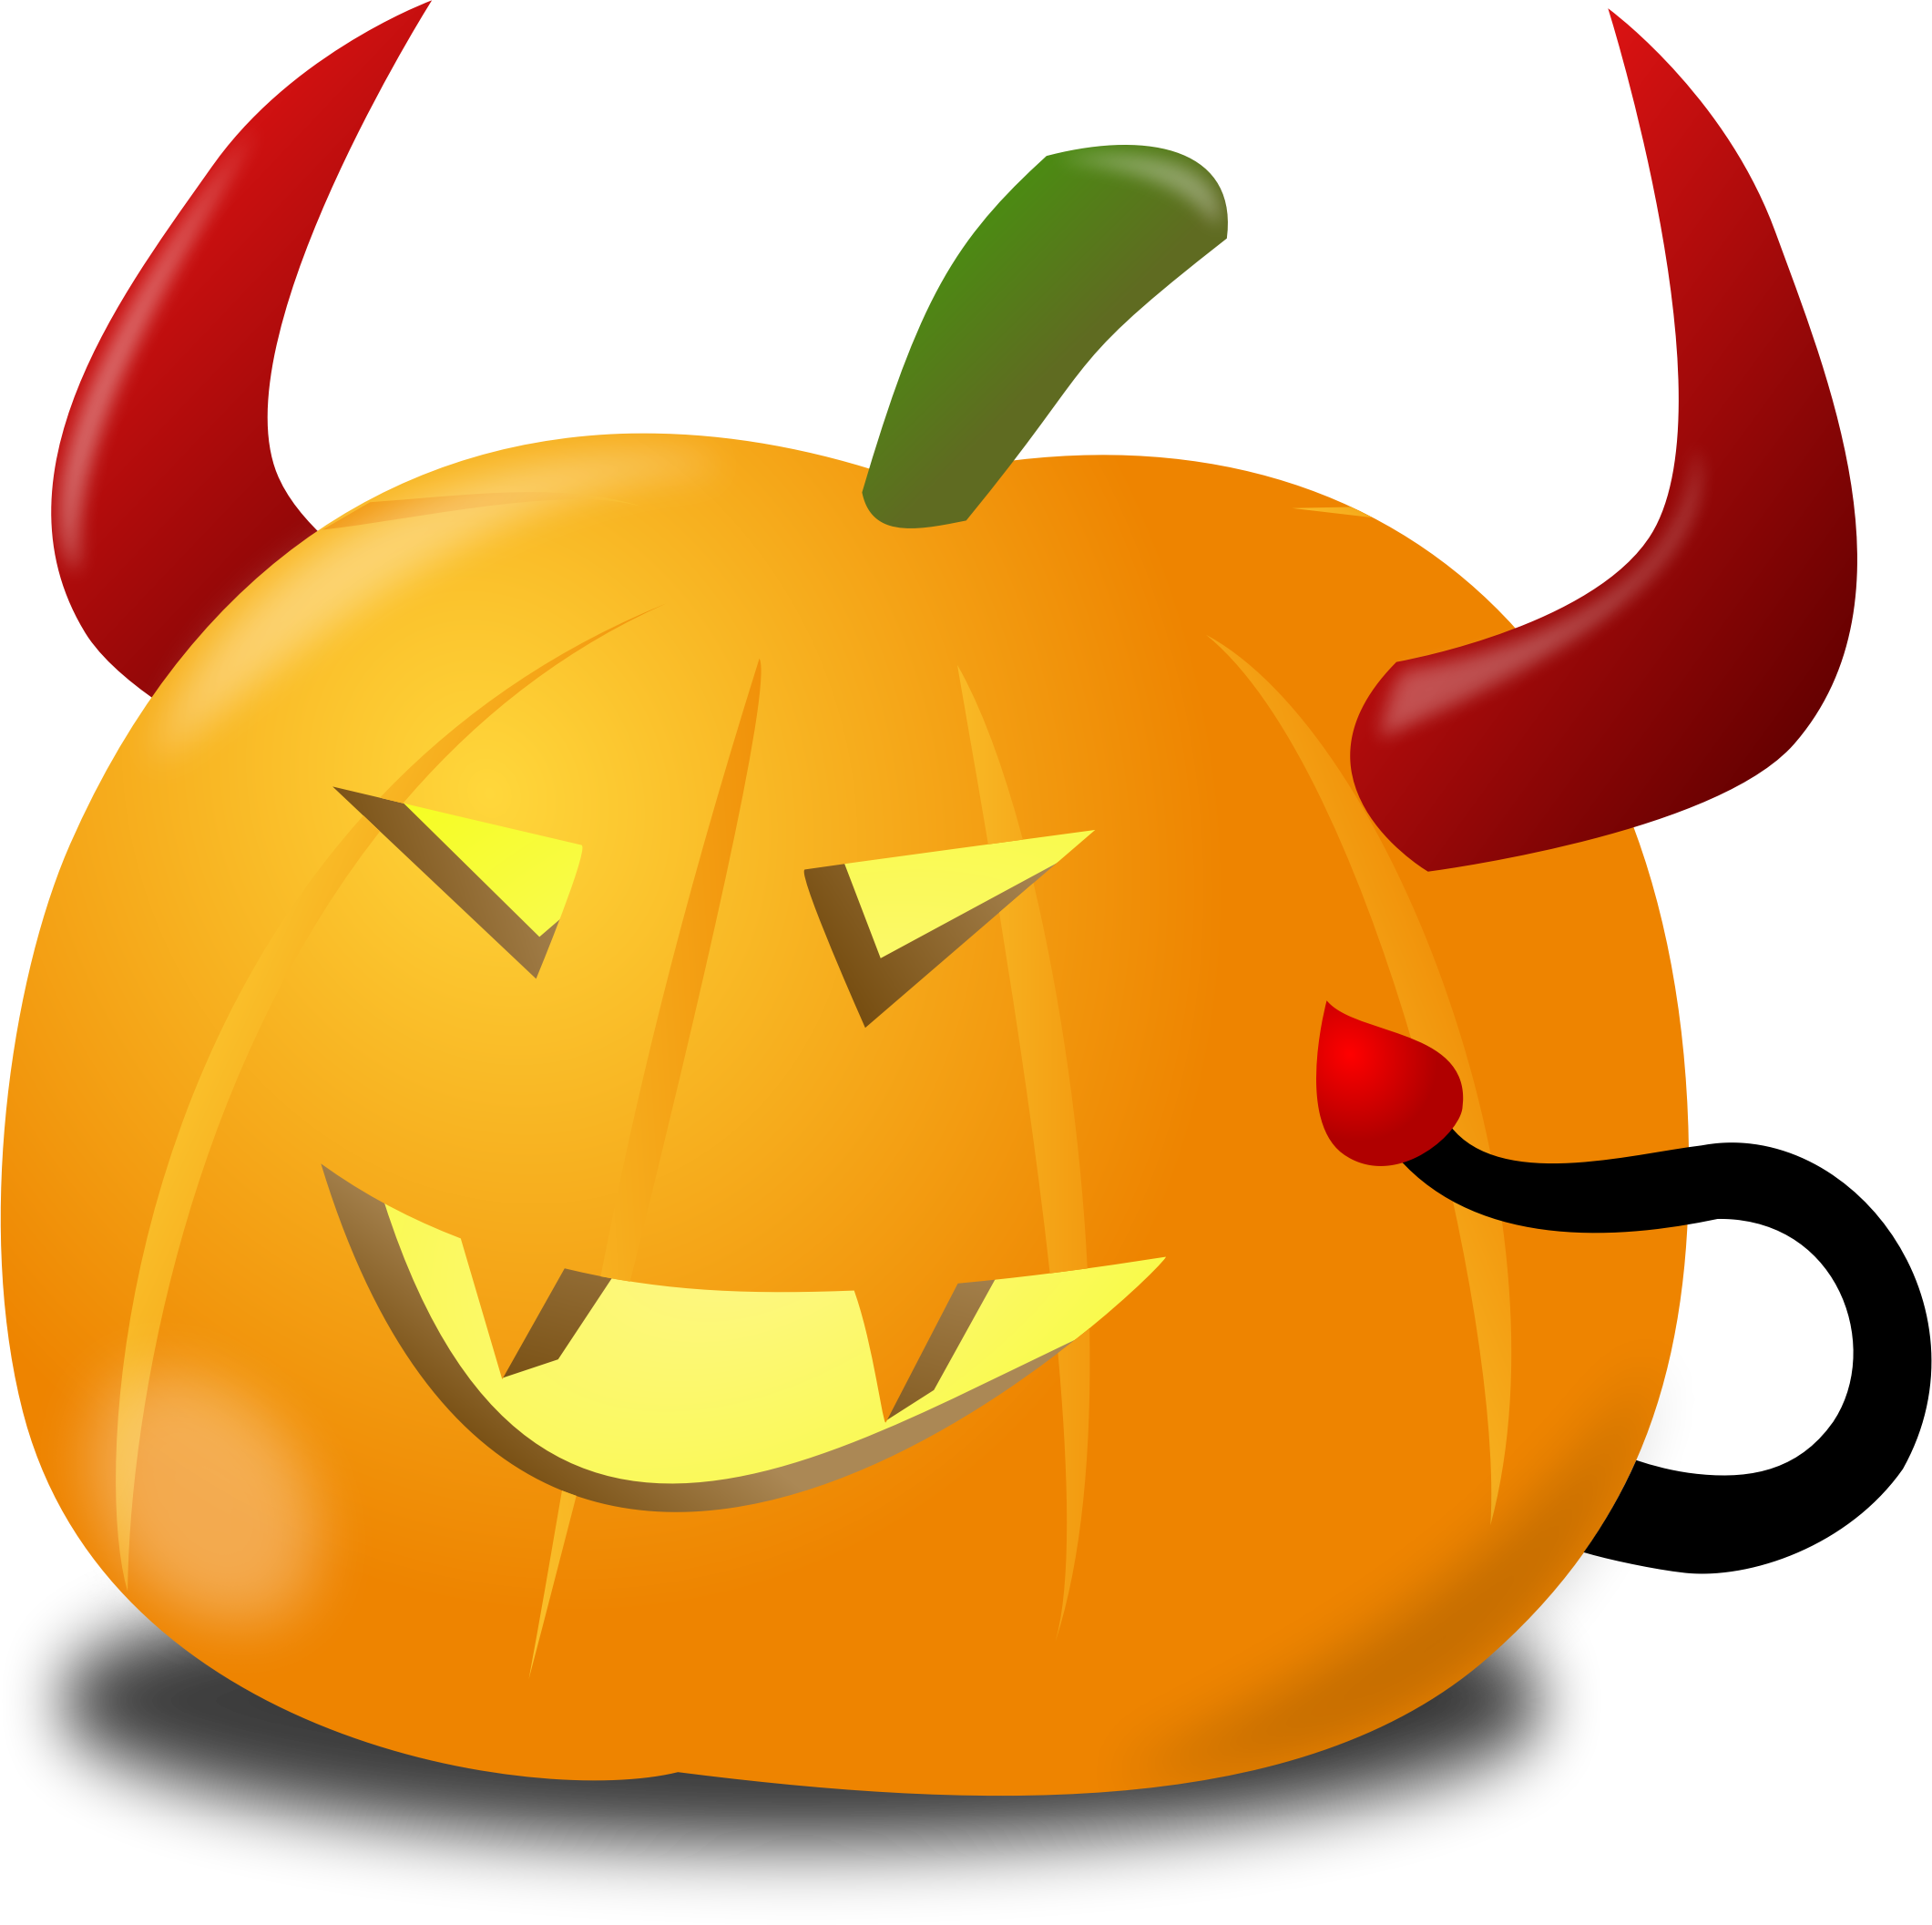 Halloween clipart devil svg library download Clipart - Devil pumpkin svg library download